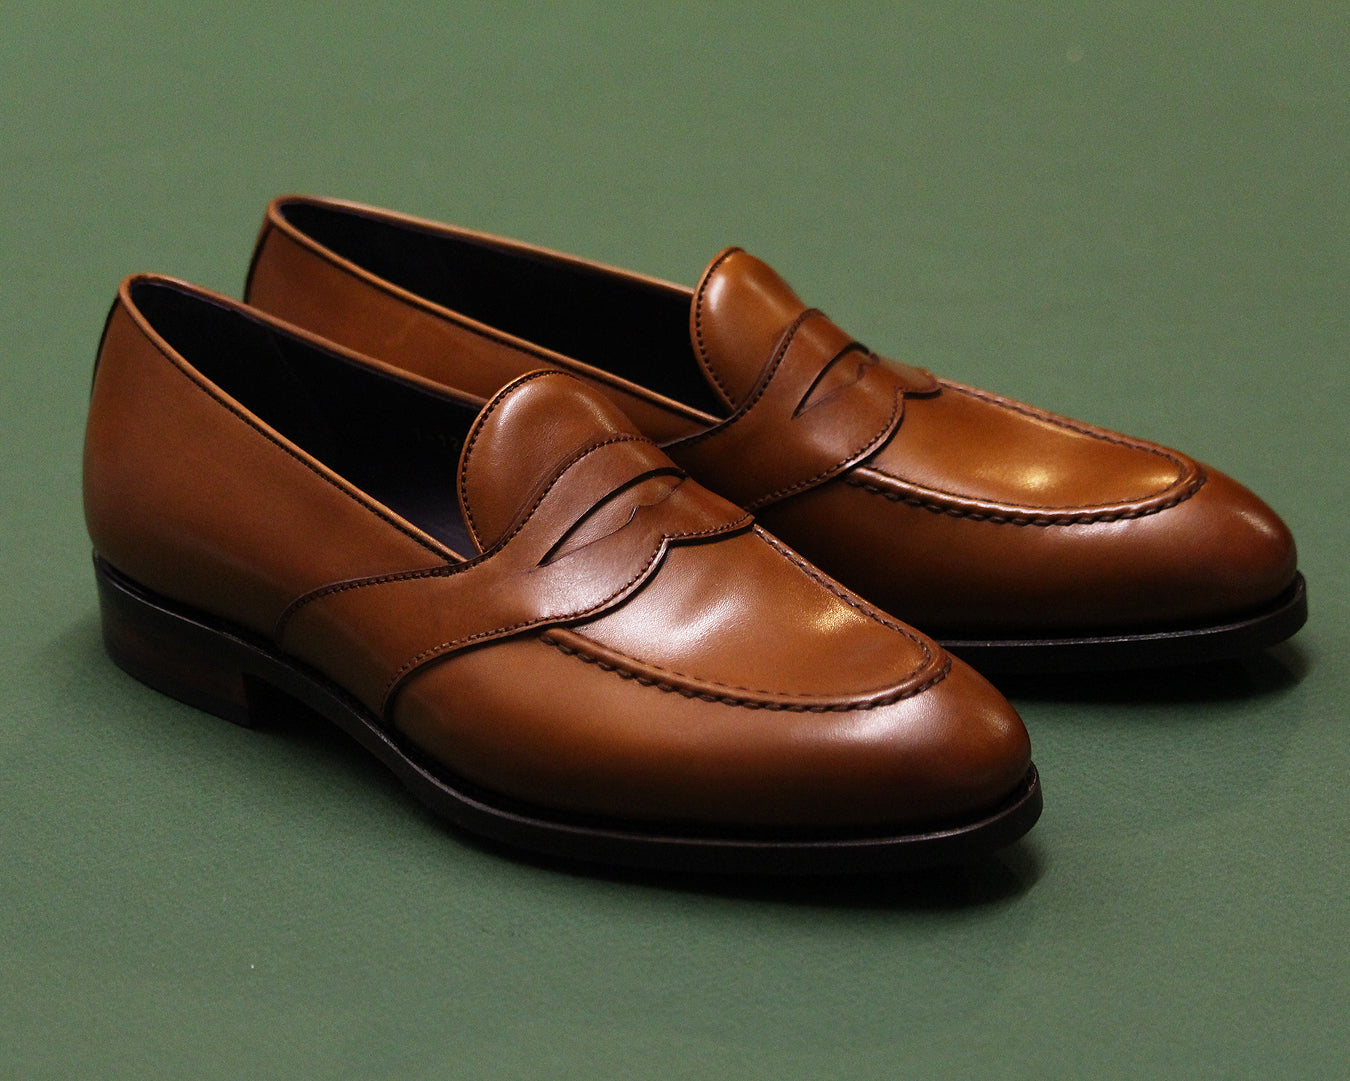 Penny Loafers 80372 on the Uetam EE last with Tomir rubber sole.